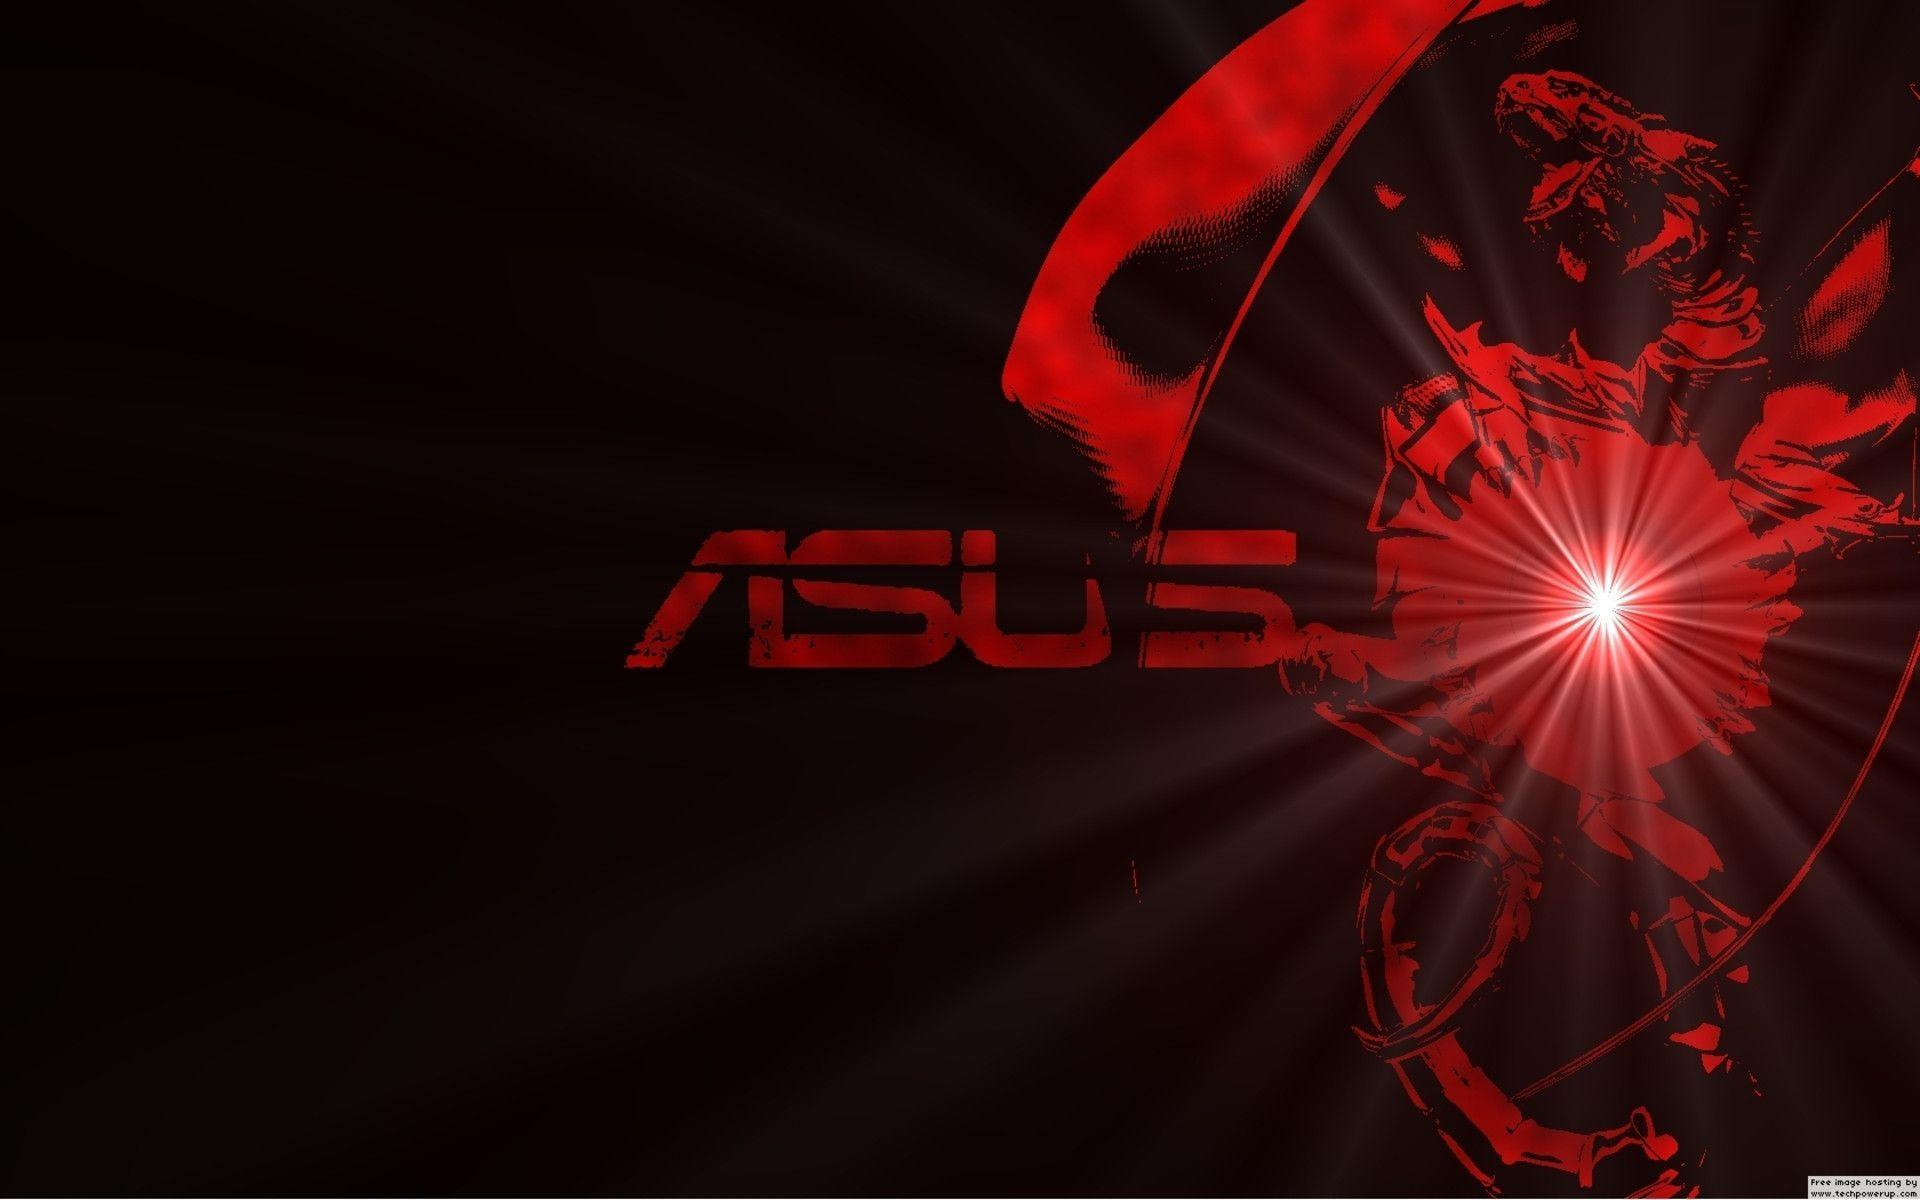 asus red tecnology wallpaper - photo #28